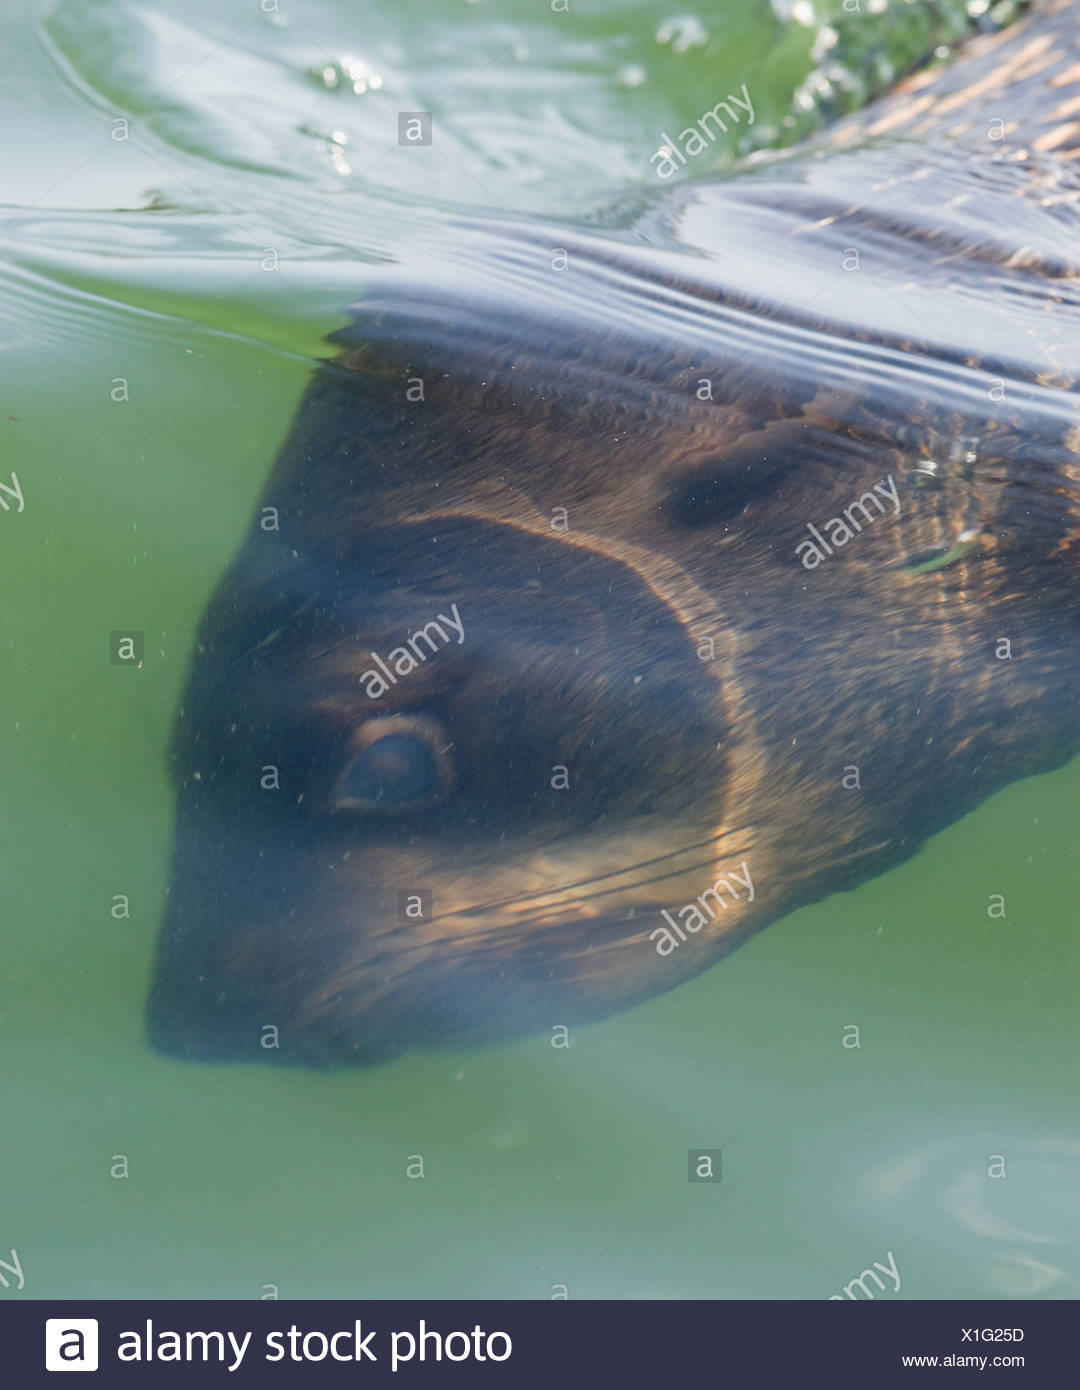 South African Fur Seal swimming underwater, Namibia, Africa - Stock Image